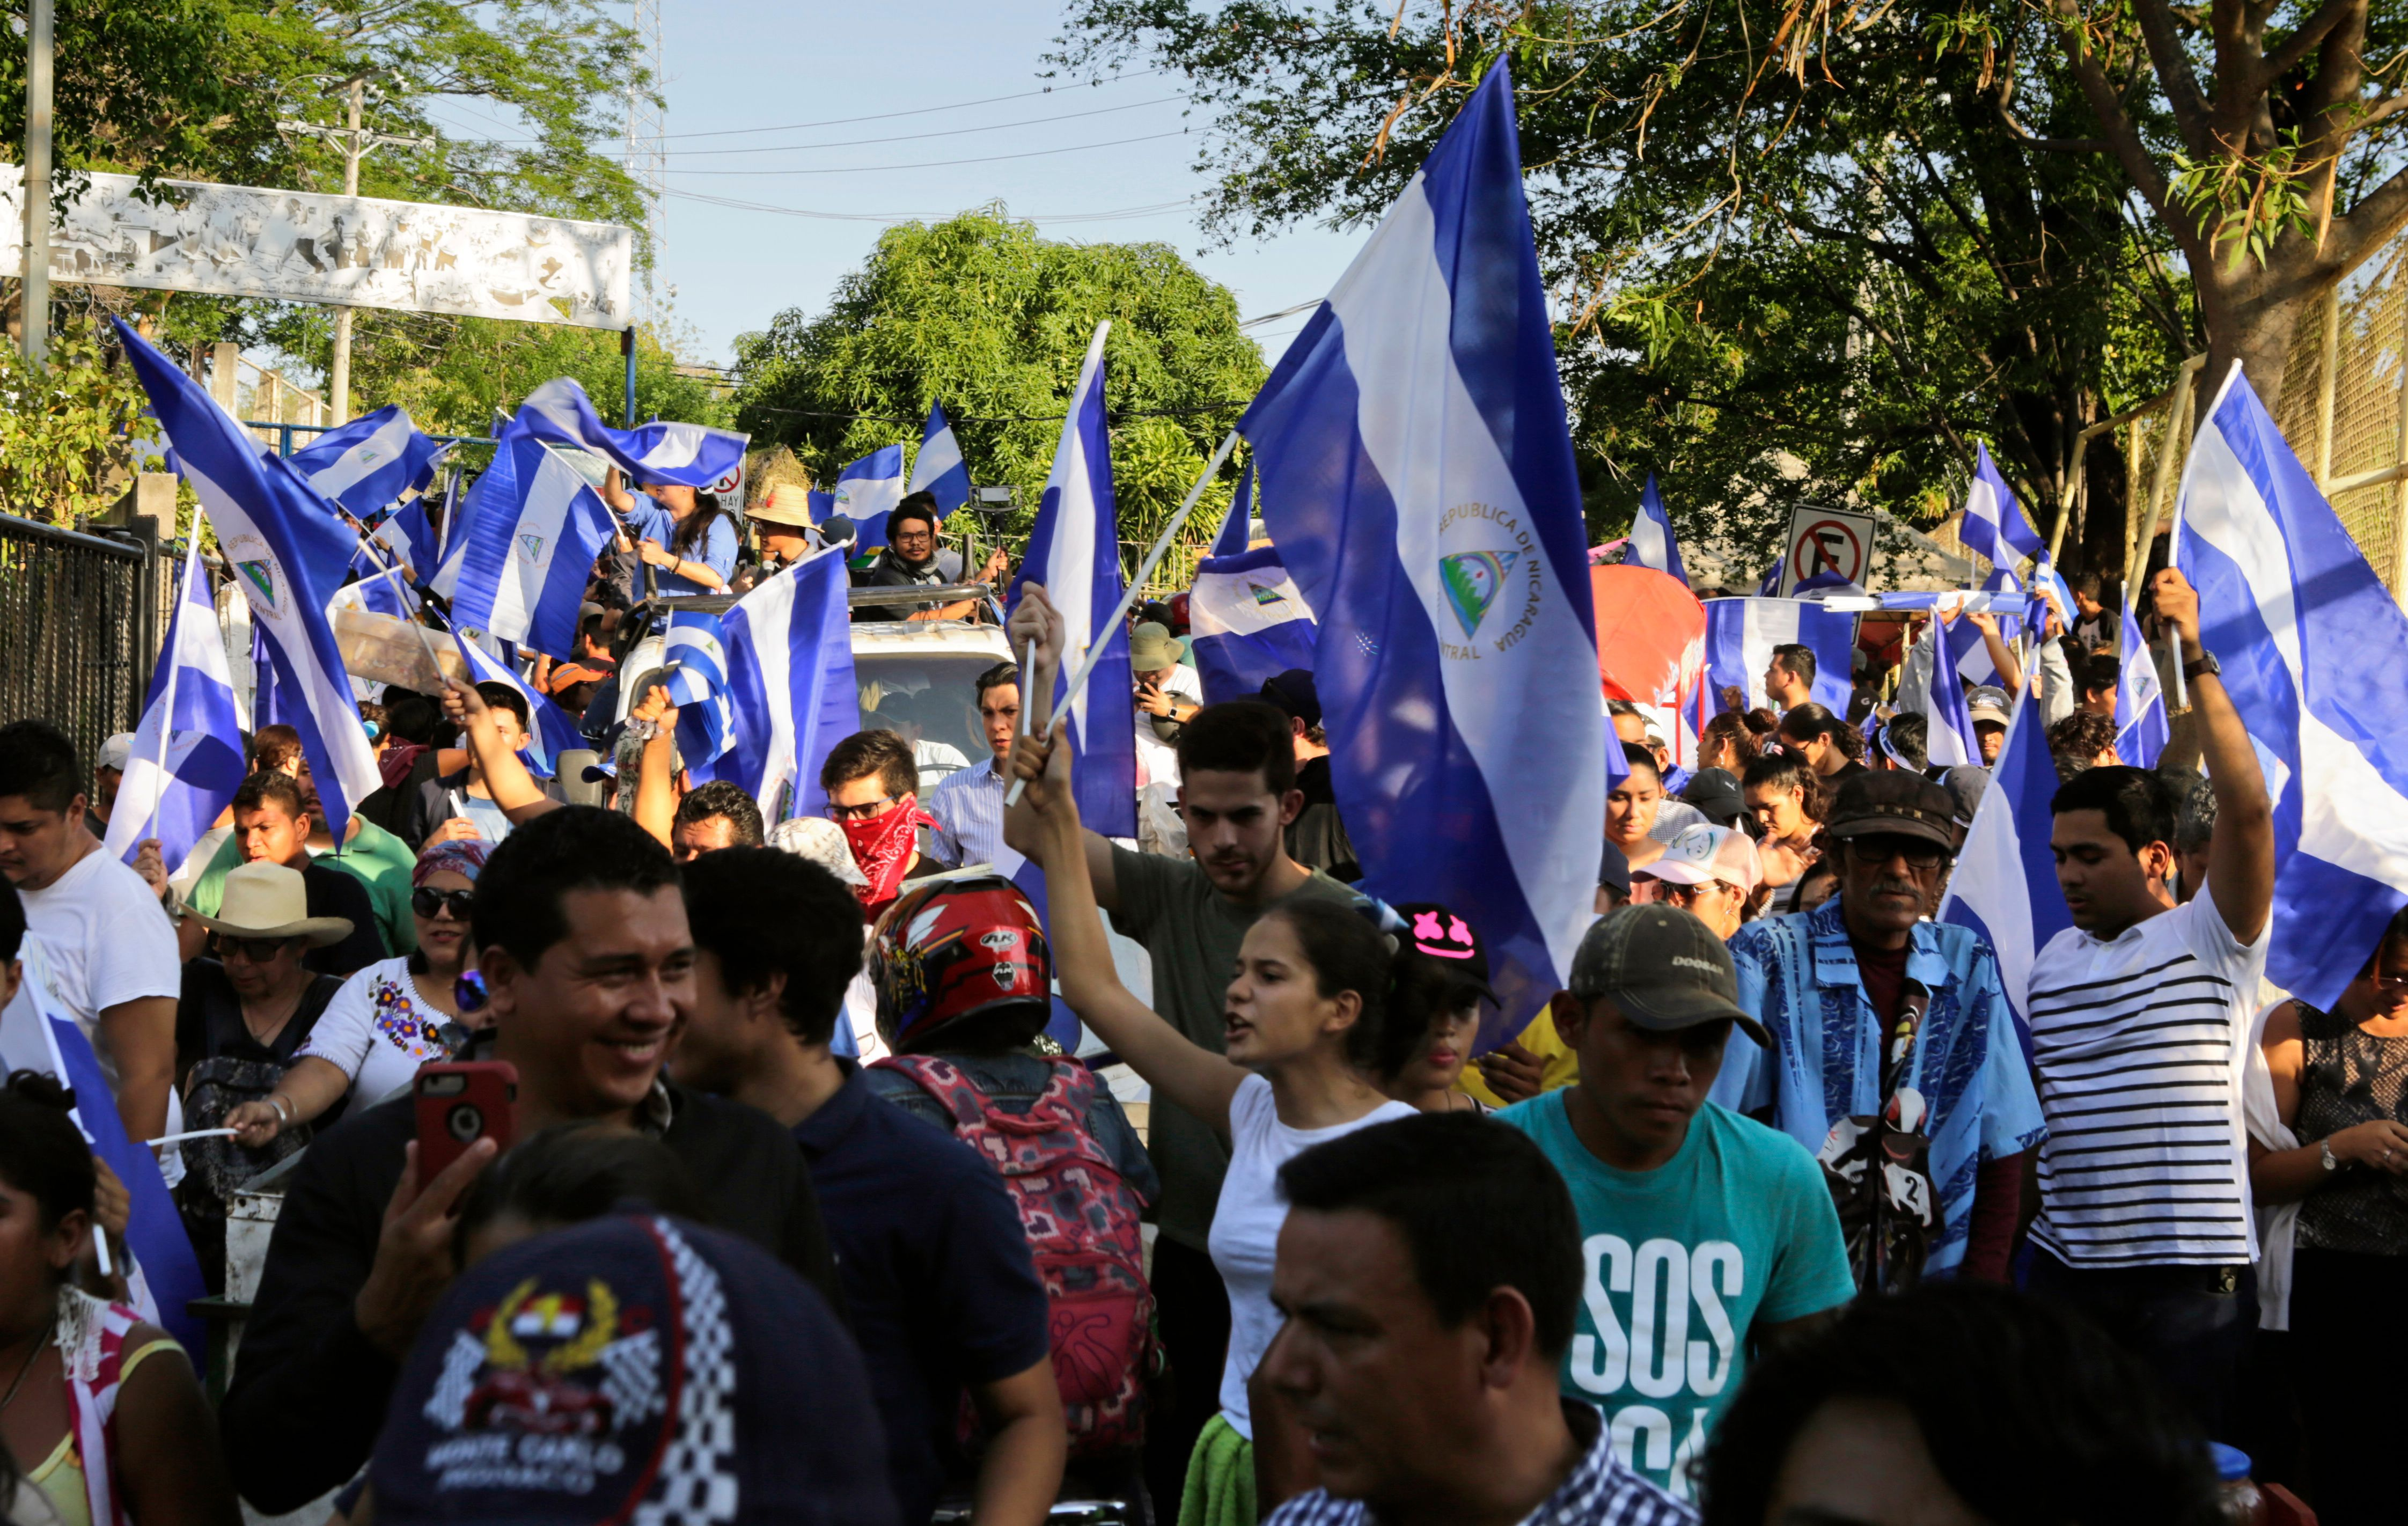 Protesters in Nicaragua